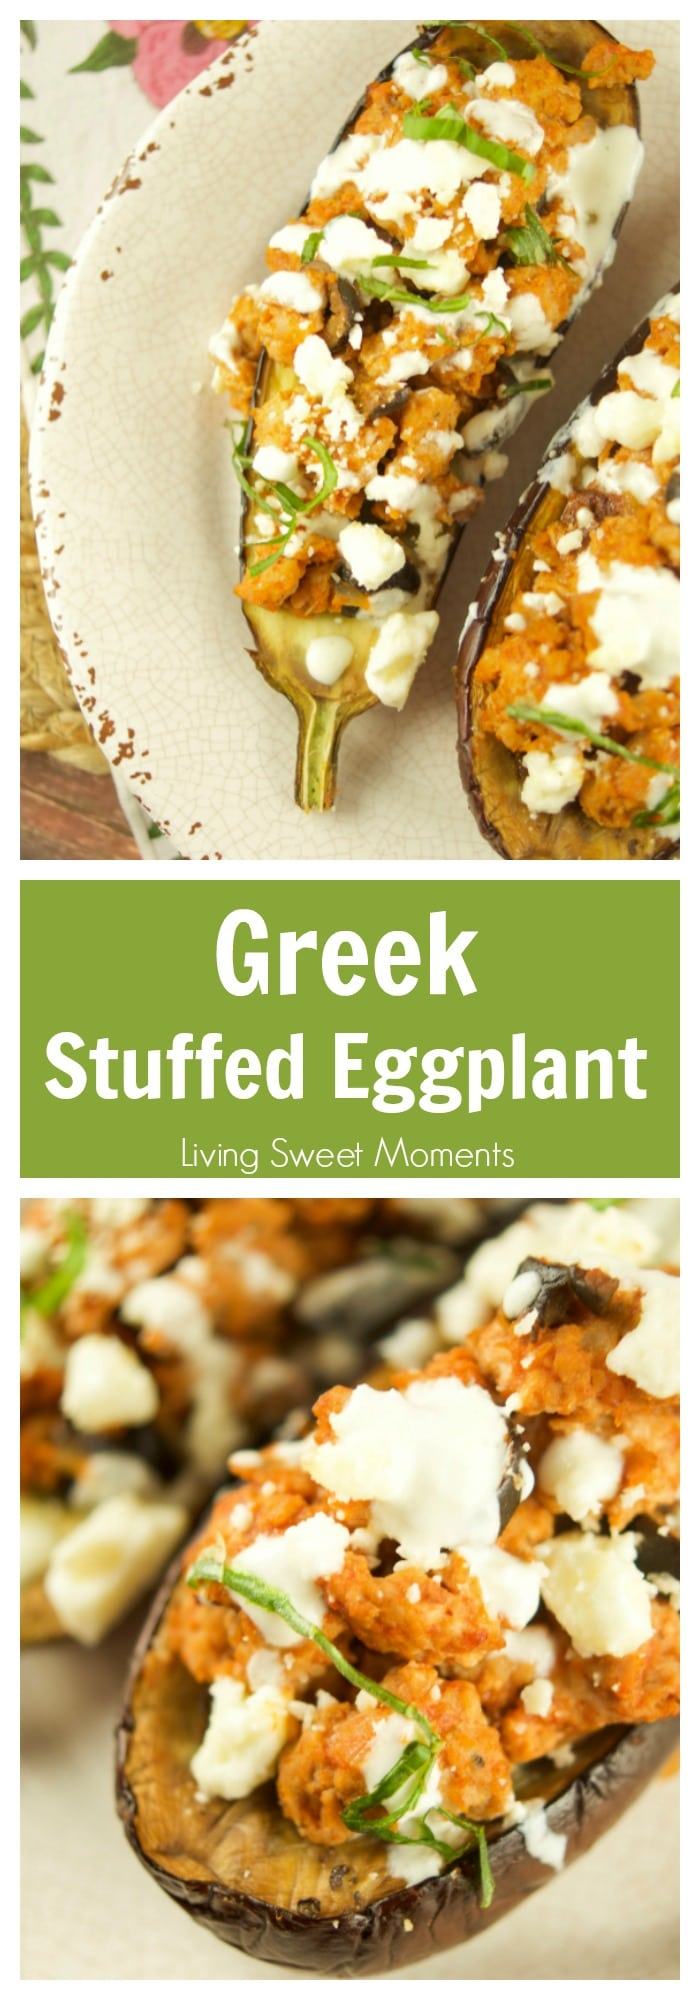 This tasty Greek Stuffed Eggplant is made with meat, kalamata olives and topped with feta cheese and tzatziki sauce. The perfect quick weeknight dinner idea. More stuffed eggplant recipes at livingsweetmoments.com